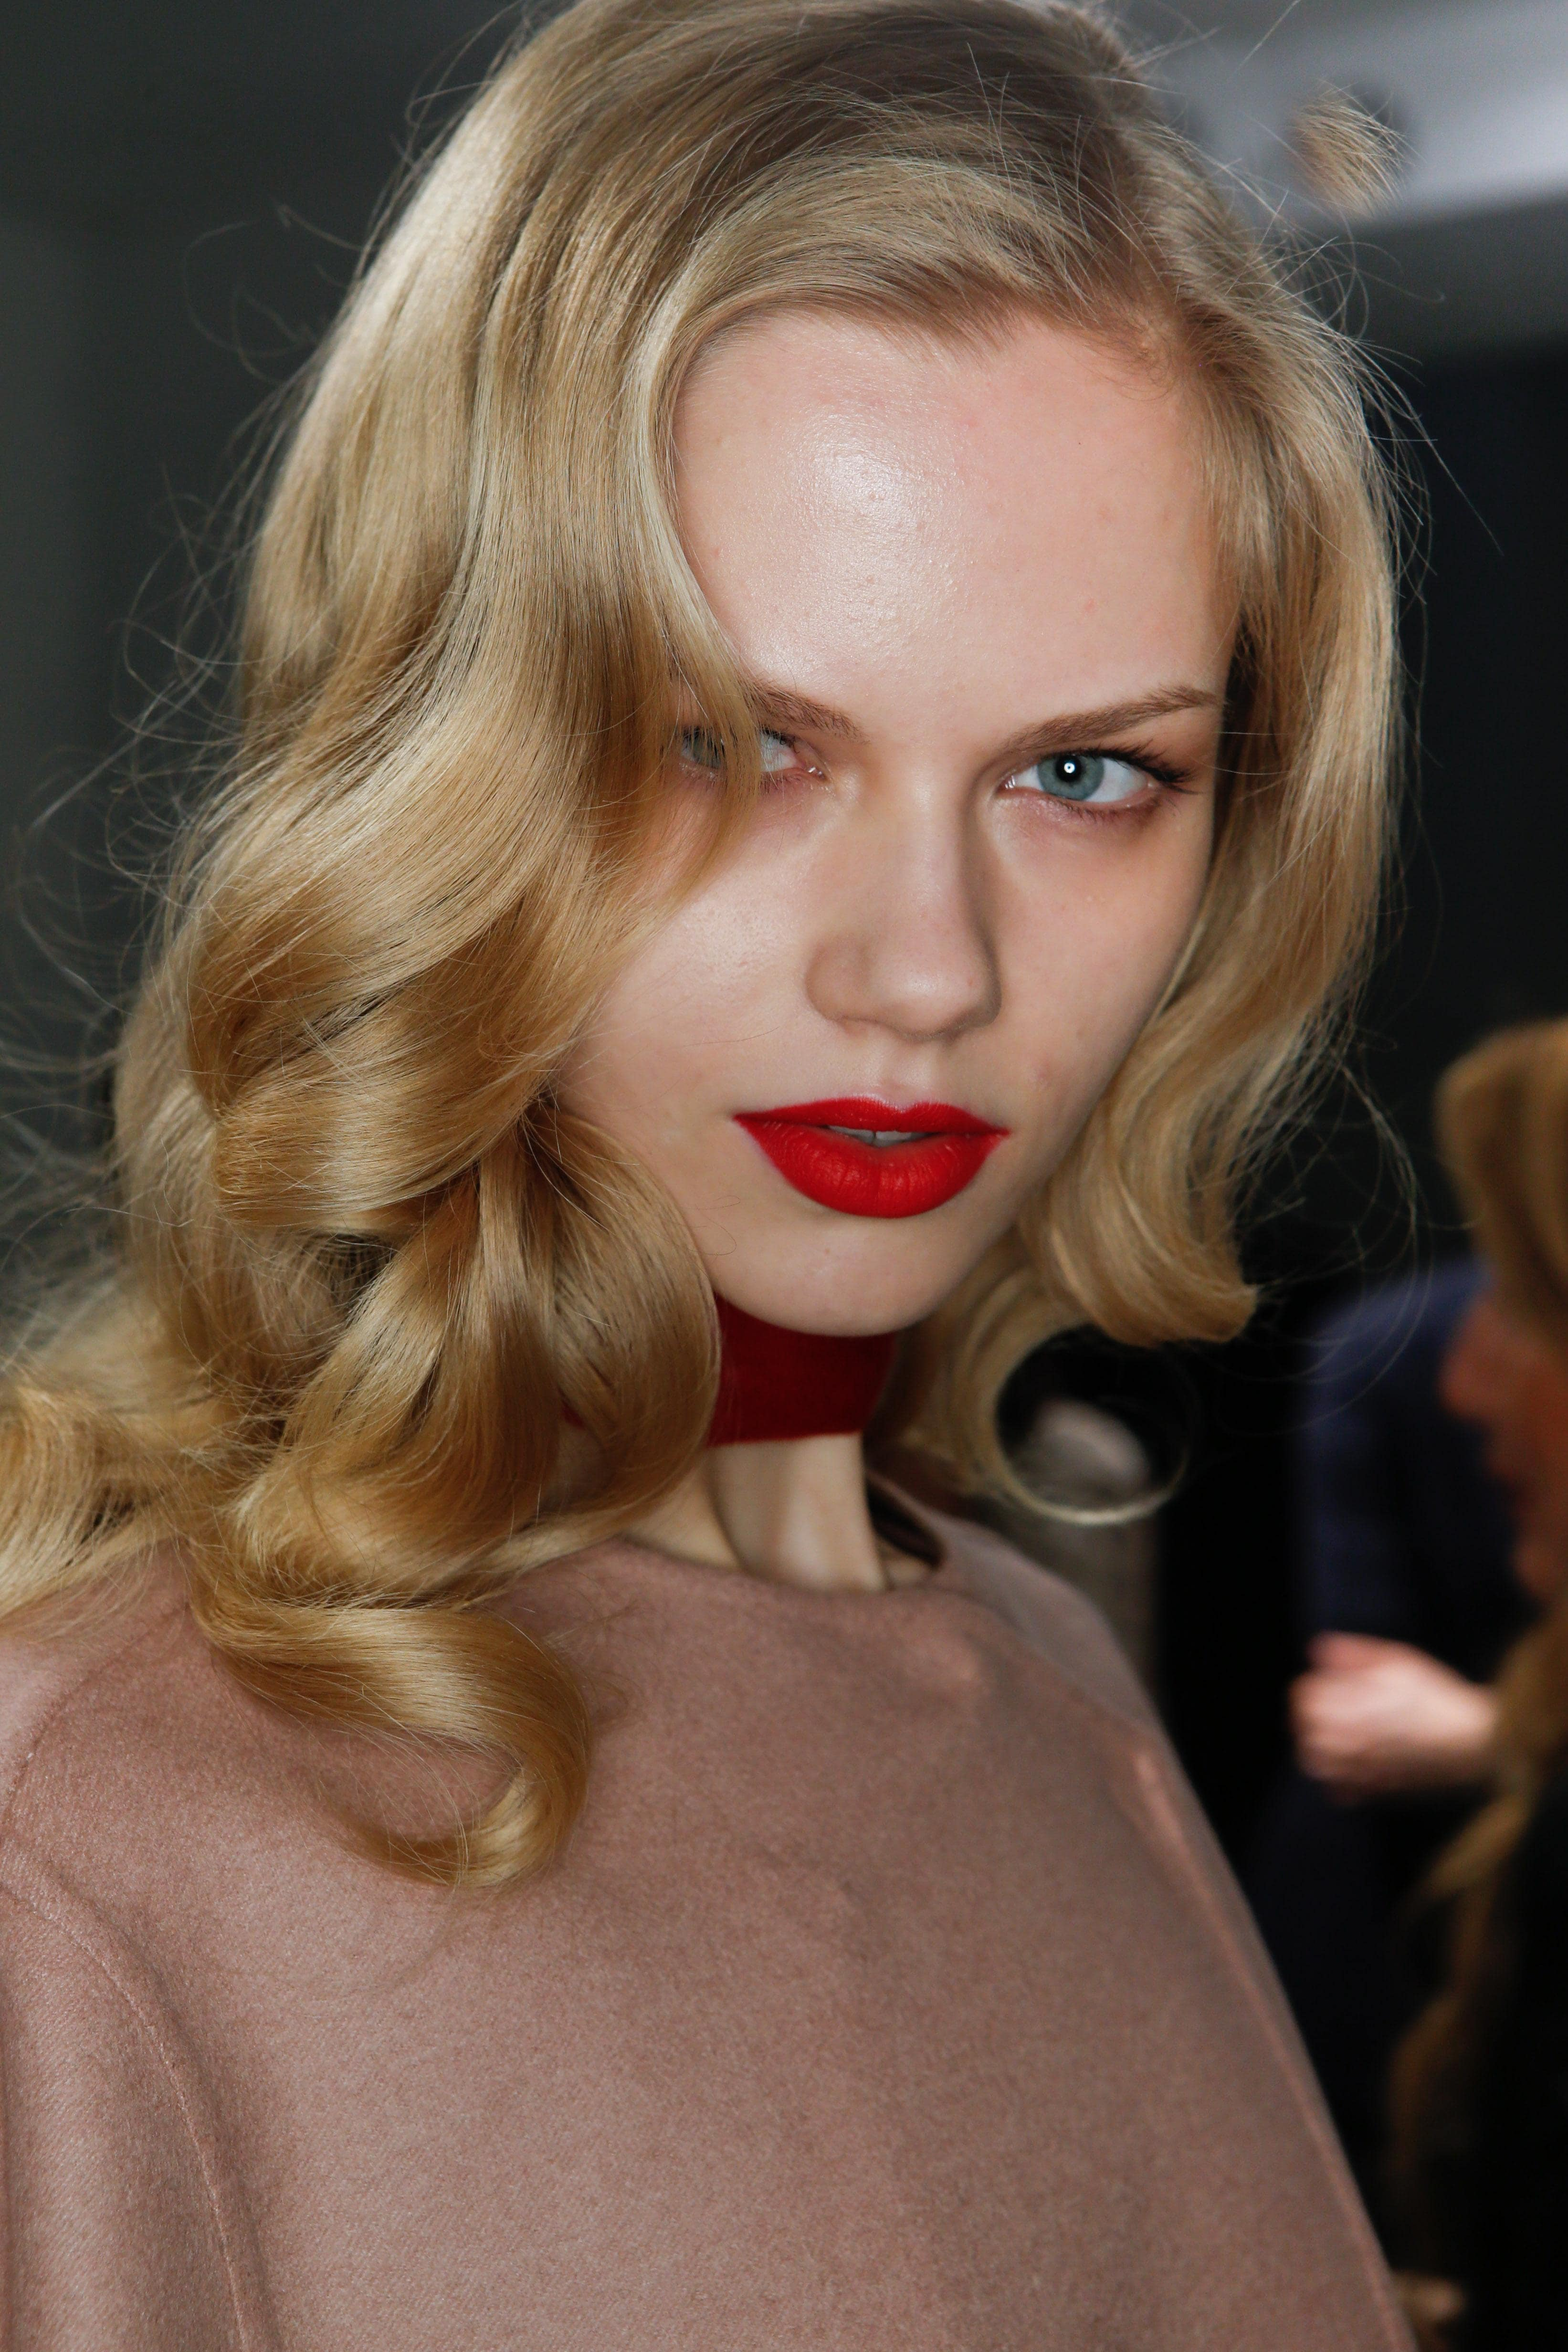 Party hairstyles: Woman with medium length vintage curly blonde hair wearing a soft pink top and bold red lipstick.